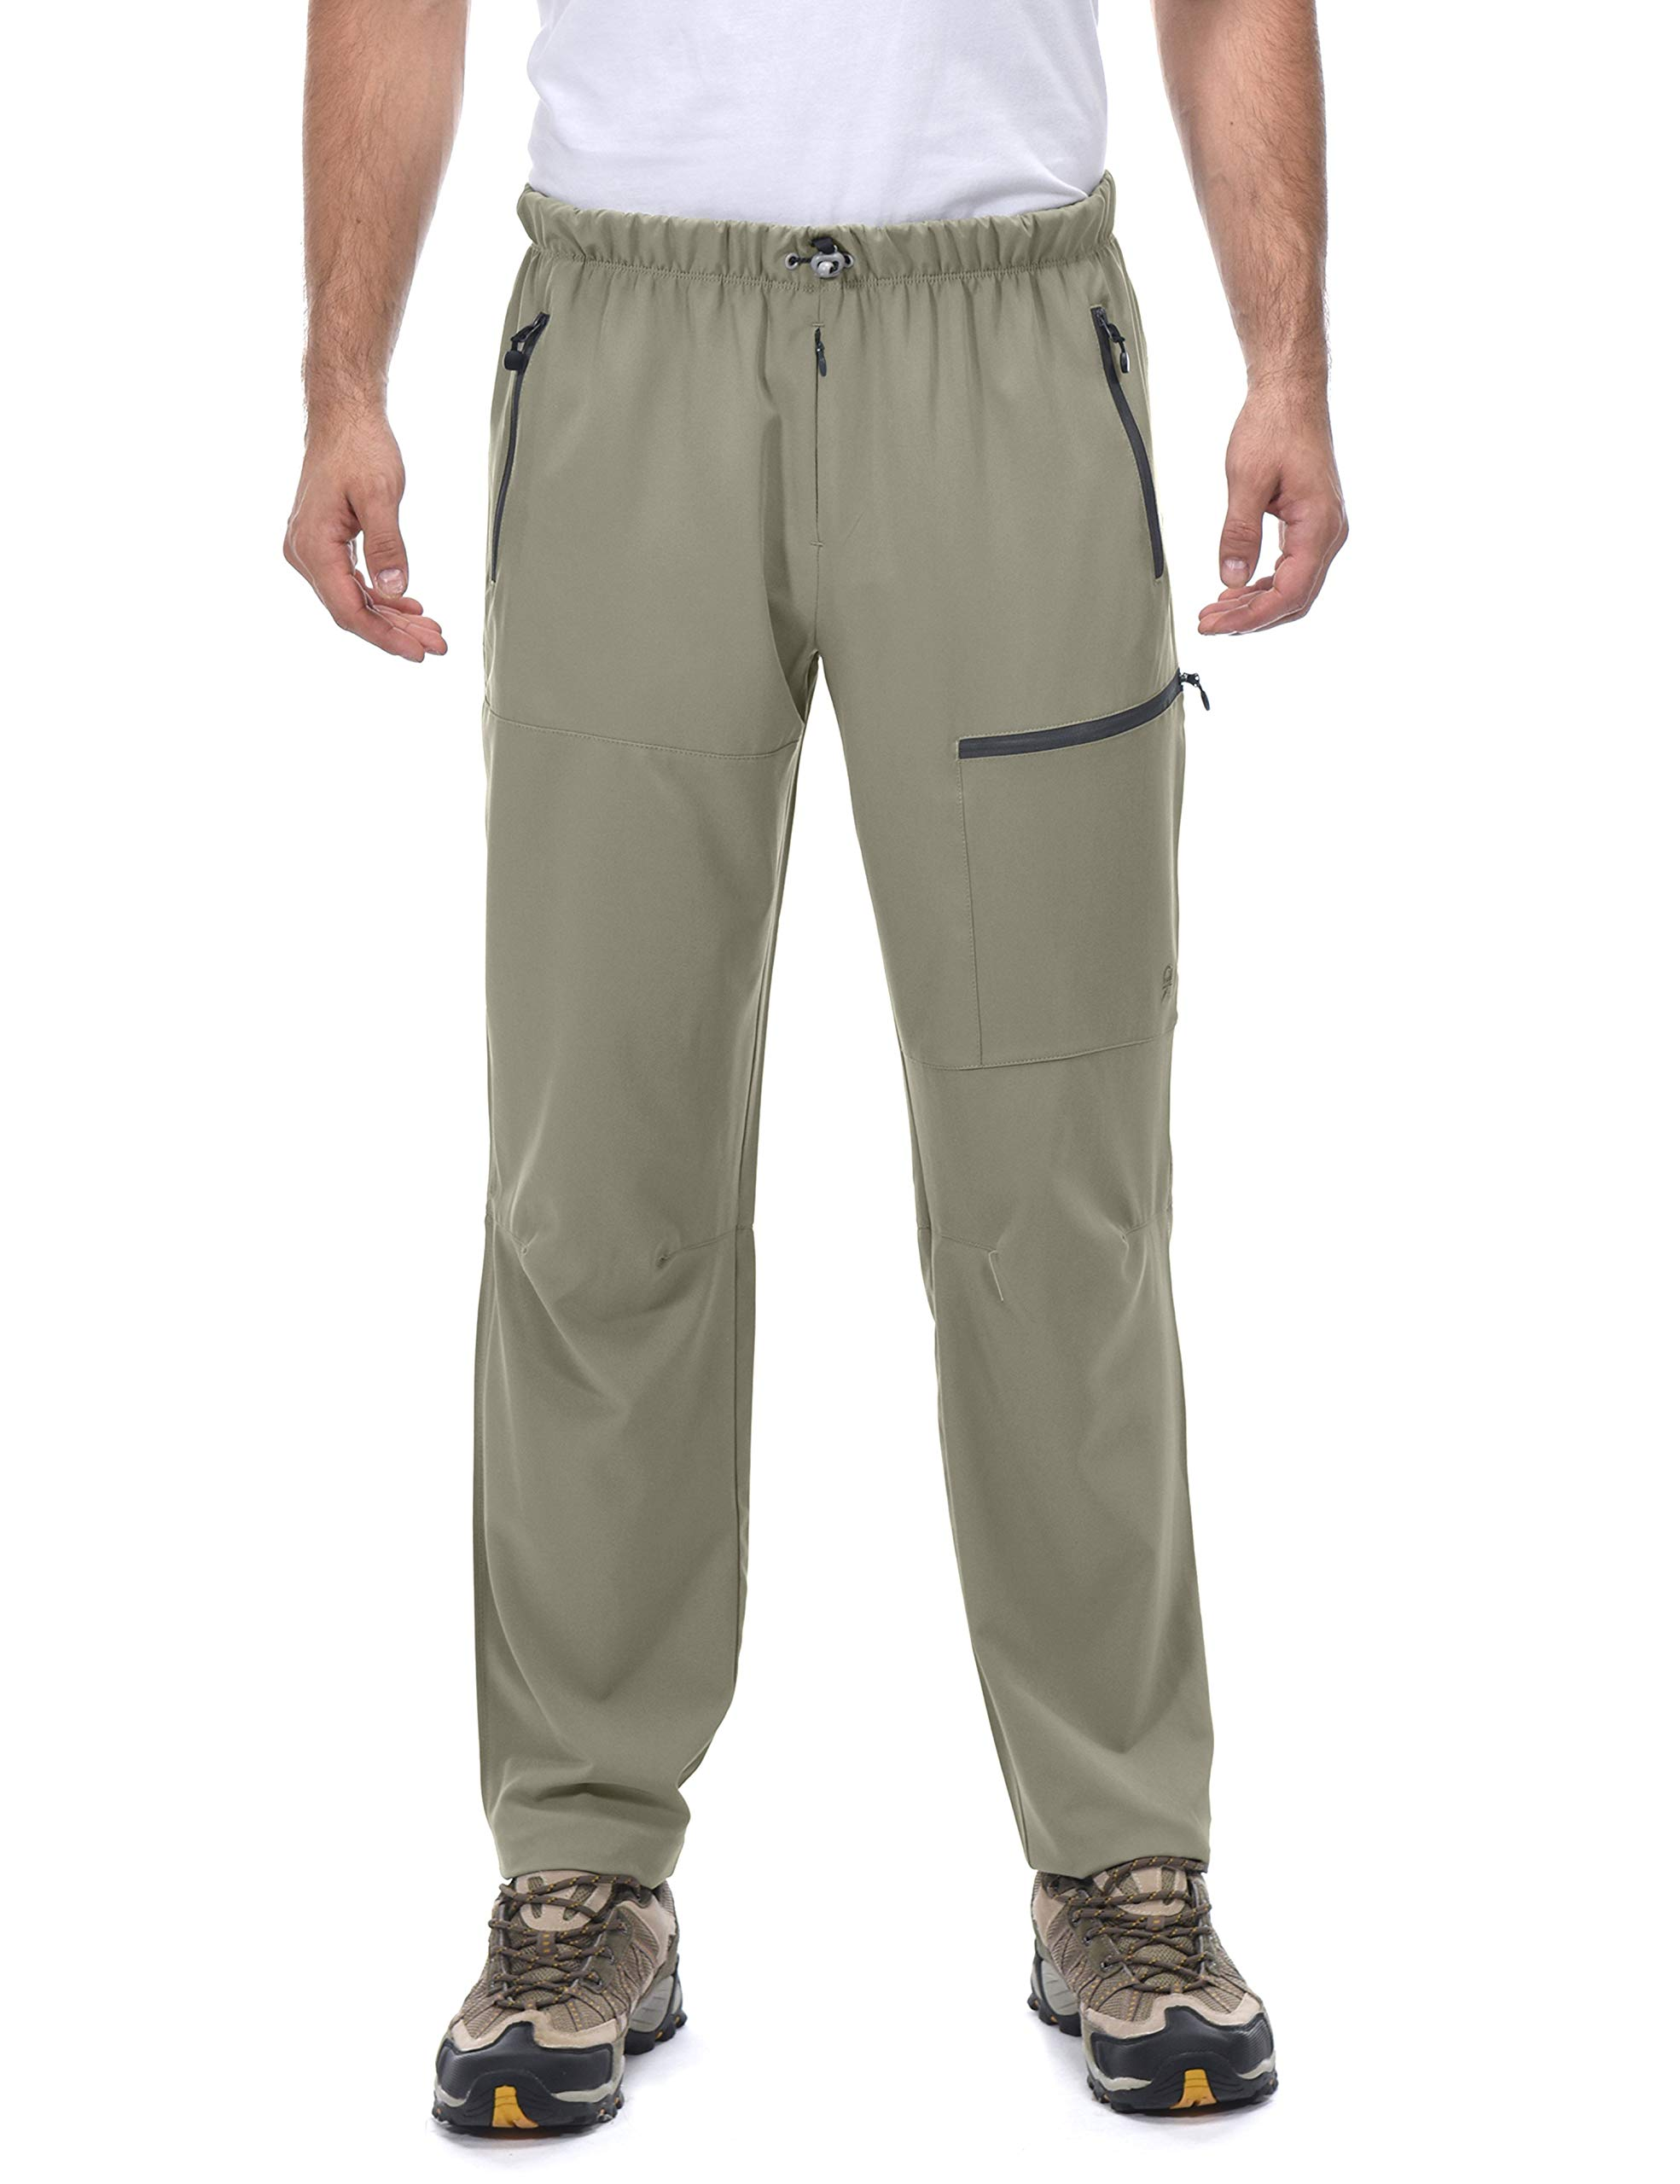 Little Donkey Andy Men's Stretch Hiking Pants, Quick Dry, UPF 50+